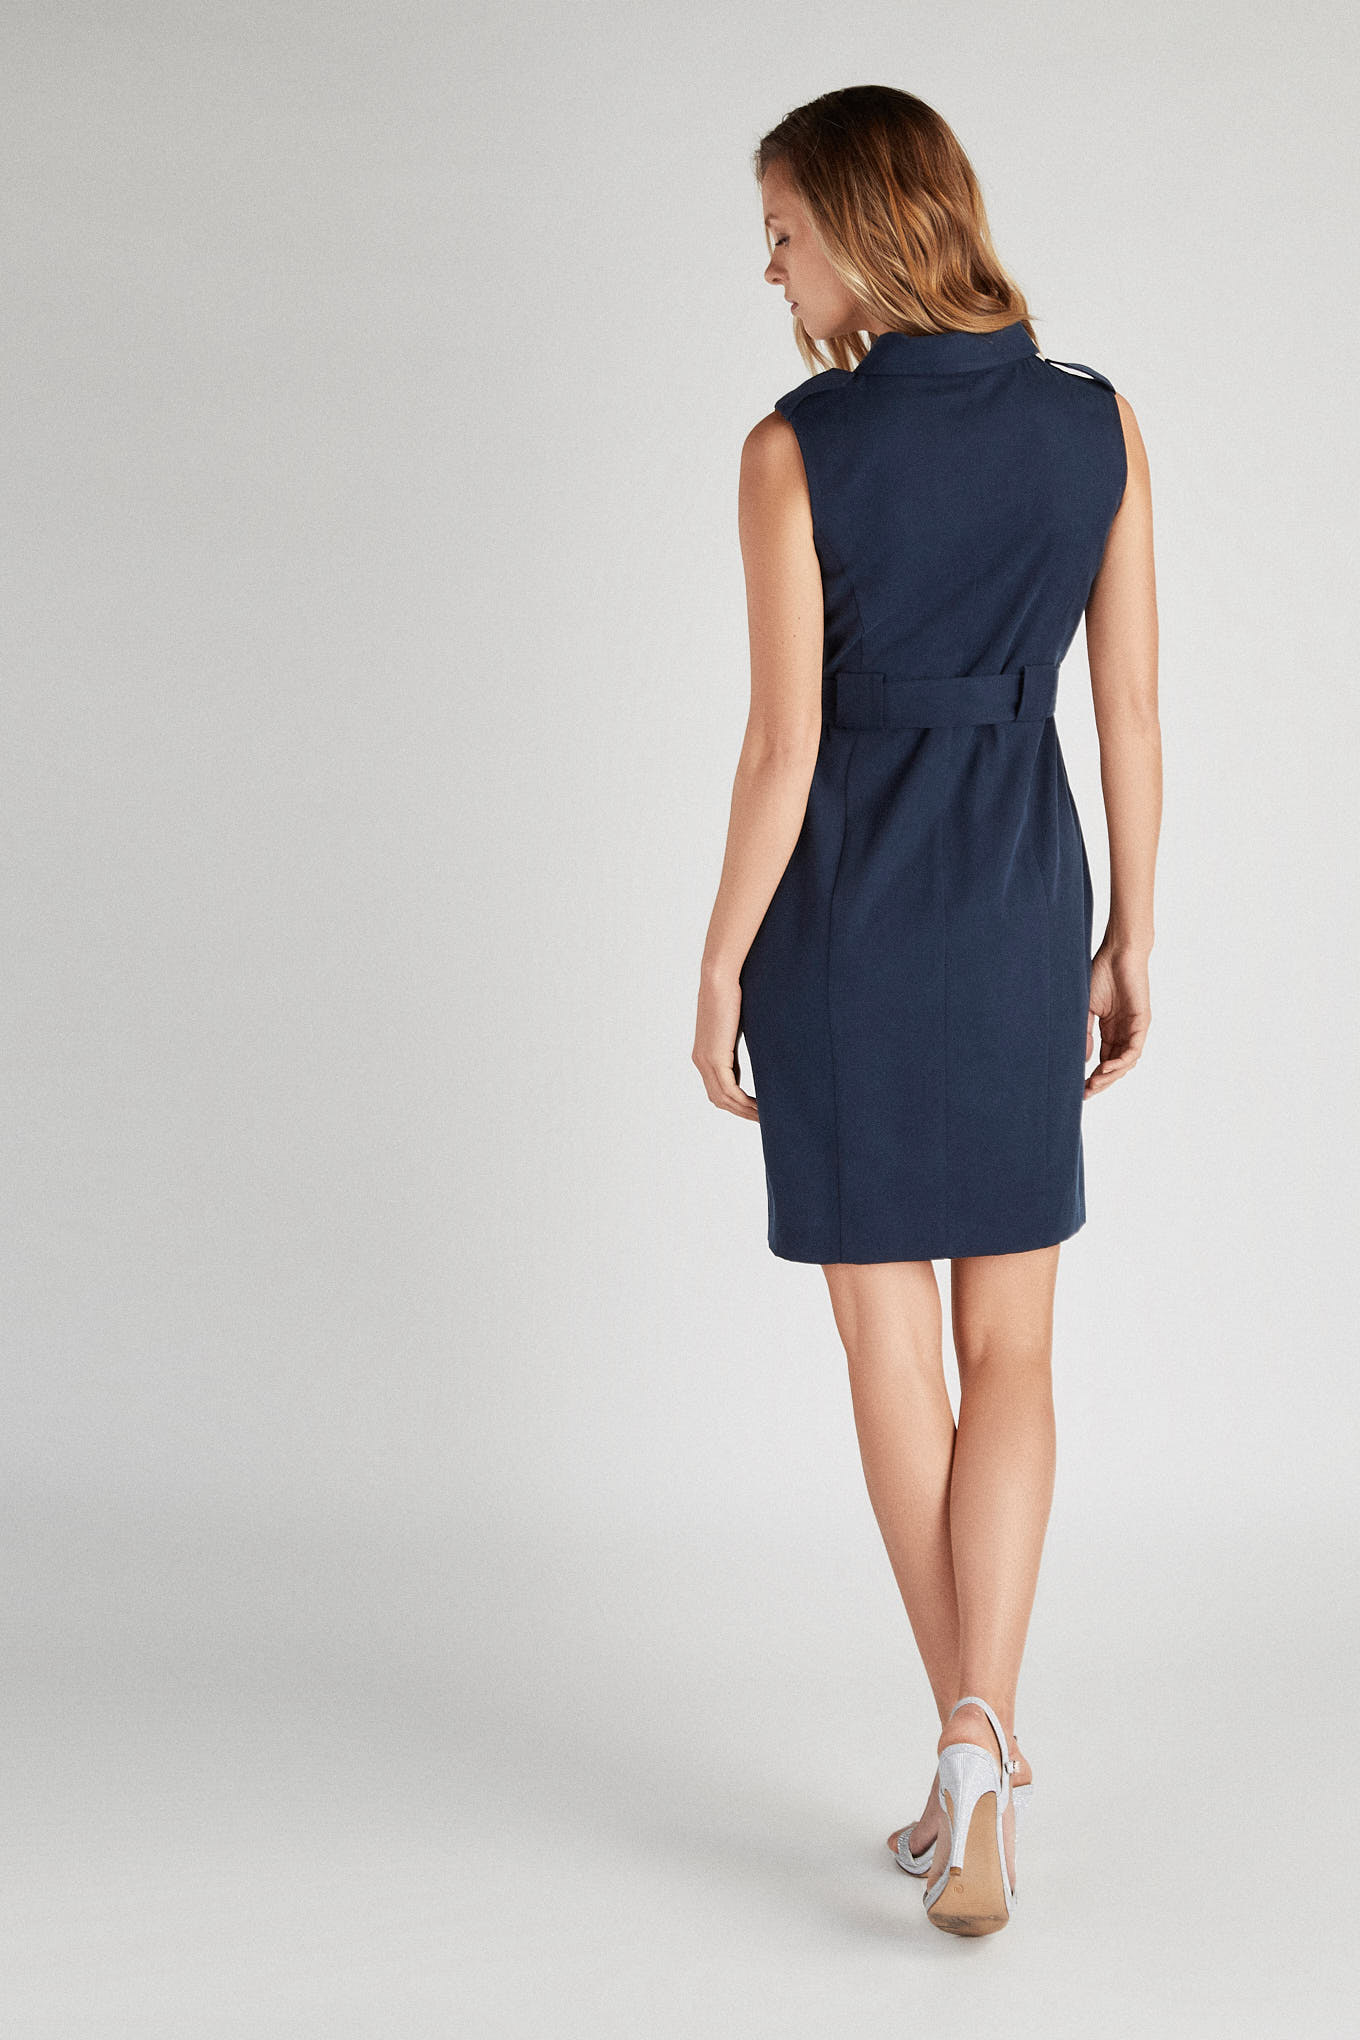 Dress Dark Blue Classic Woman